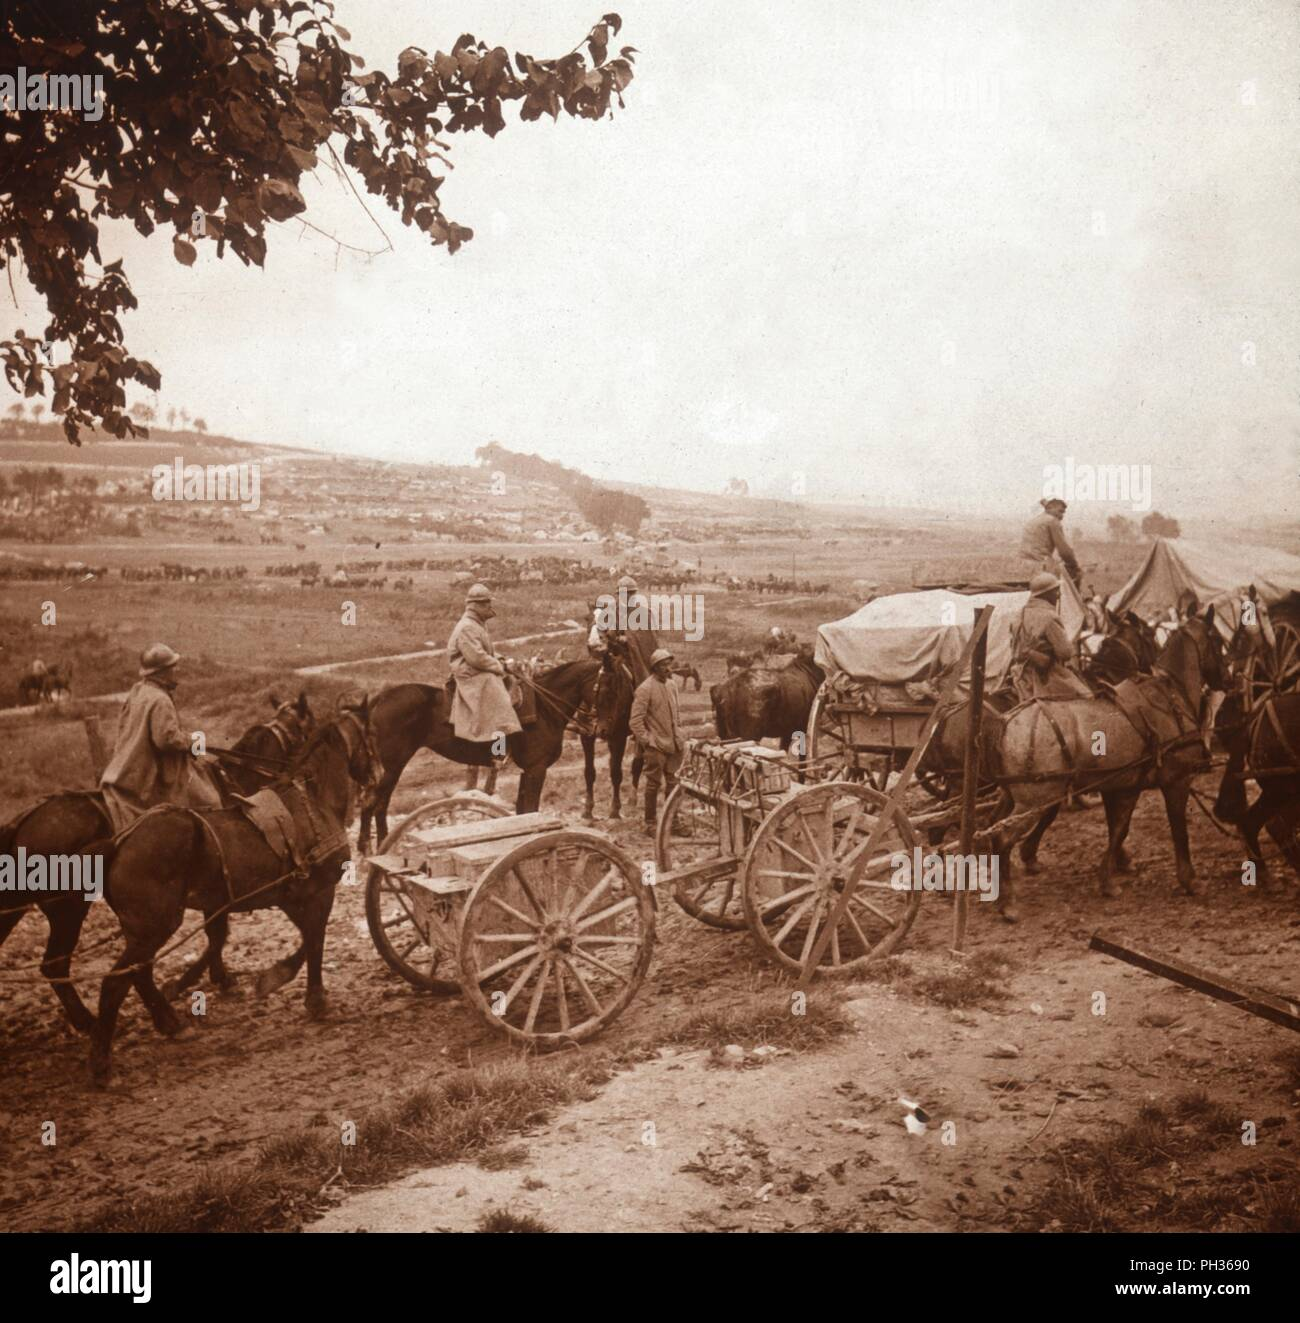 Convoy, Genicourt, northern France, 1916. Photograph from a series of glass plate stereoview images depicting scenes from World War I (1914-1918). - Stock Image